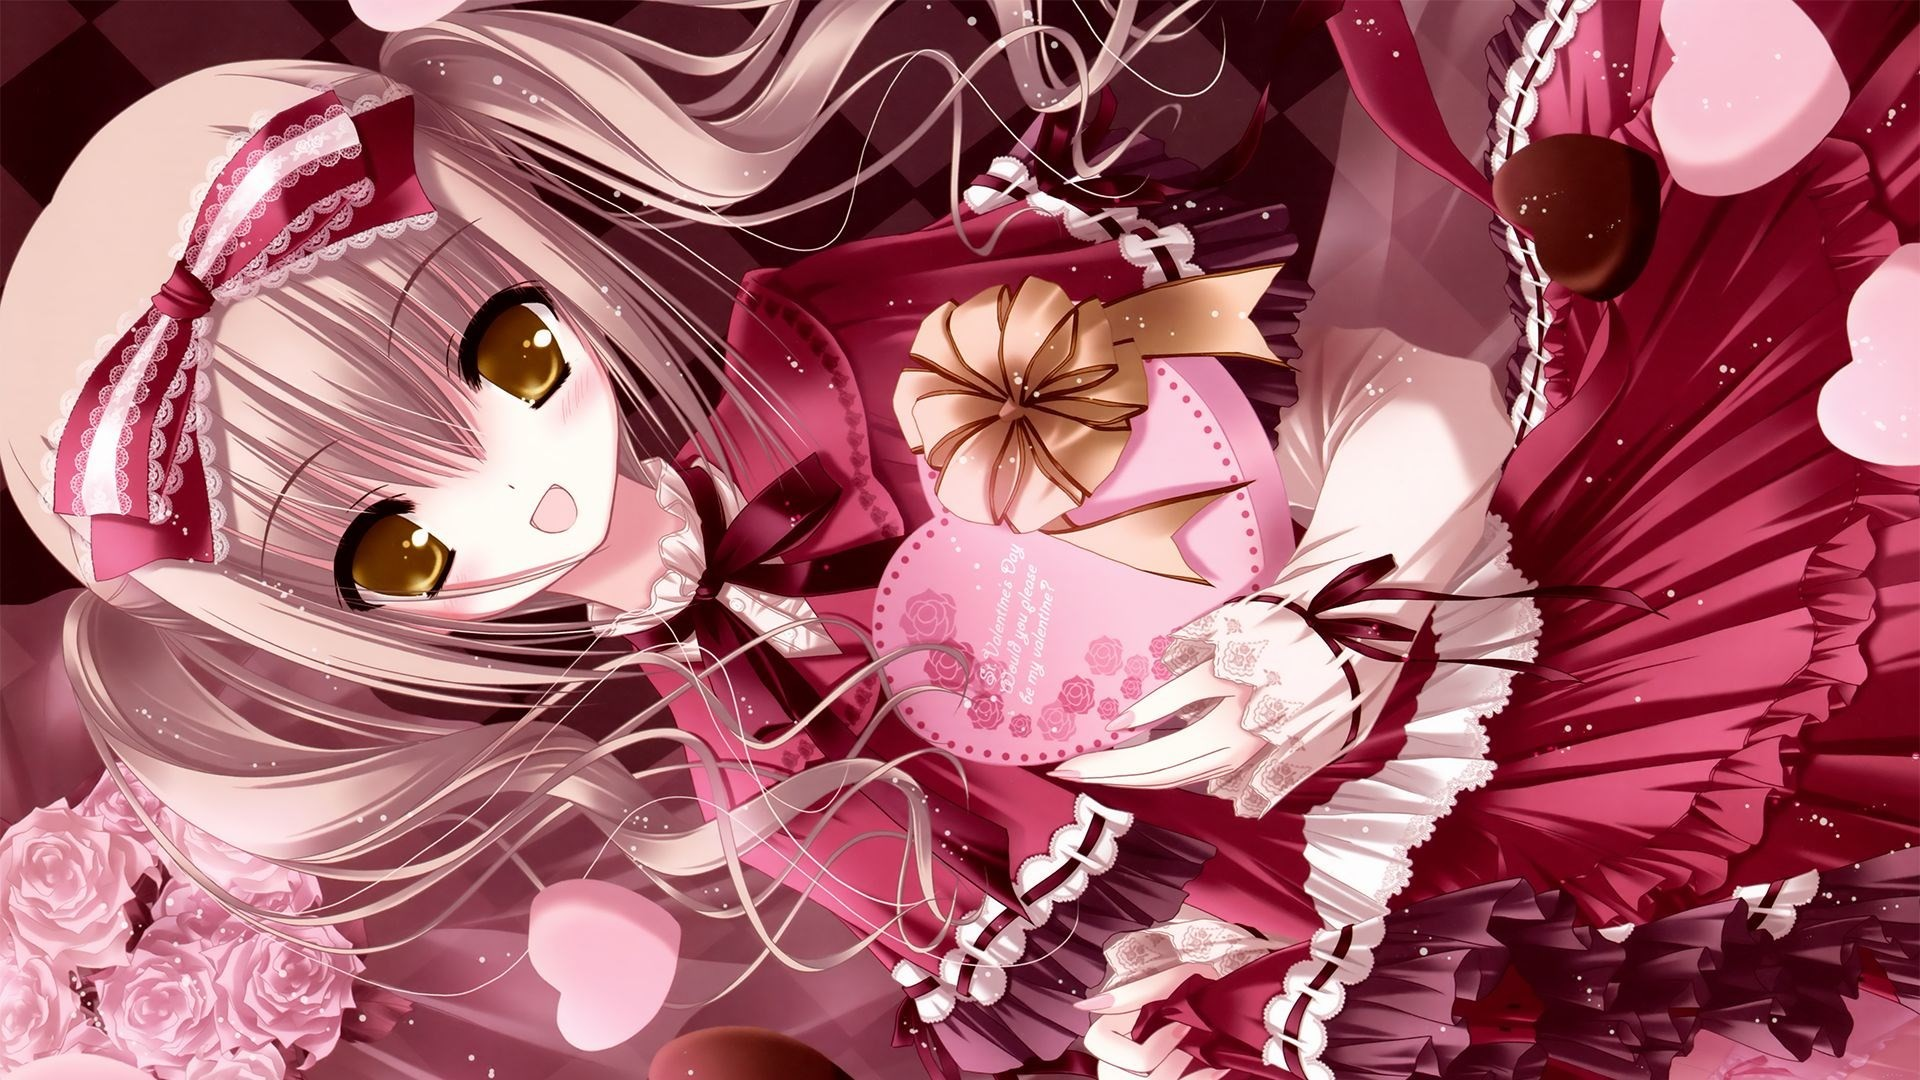 Anime girl hd wallpaper 1080p 83 images - Anime girl full hd ...